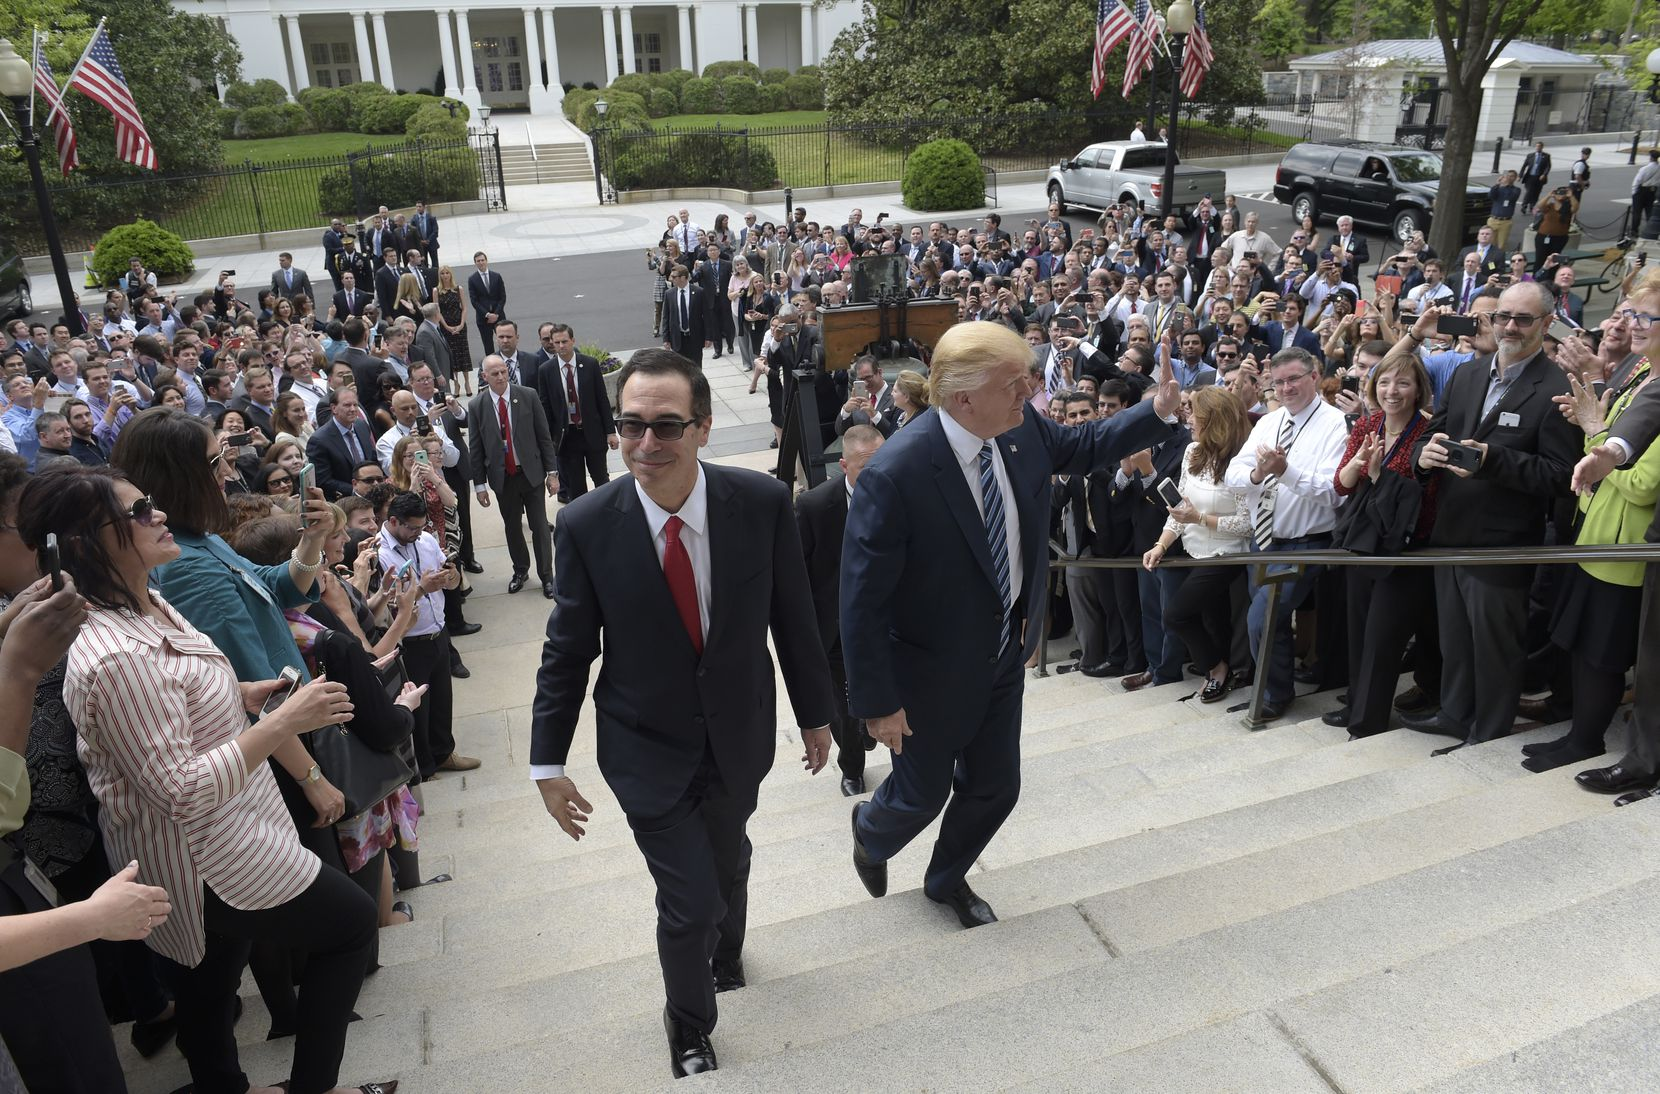 President Donald Trump and Treasury Secretary Steven Mnuchin arrive at the Treasury Department in Washington, Friday, April 21, 2017, where the president was to sign an executive order to review tax regulations set last year by his predecessor, as well as two memos to potentially reconsider major elements of the 2010 Dodd-Frank financial reforms passed in the wake of the Great Recession.